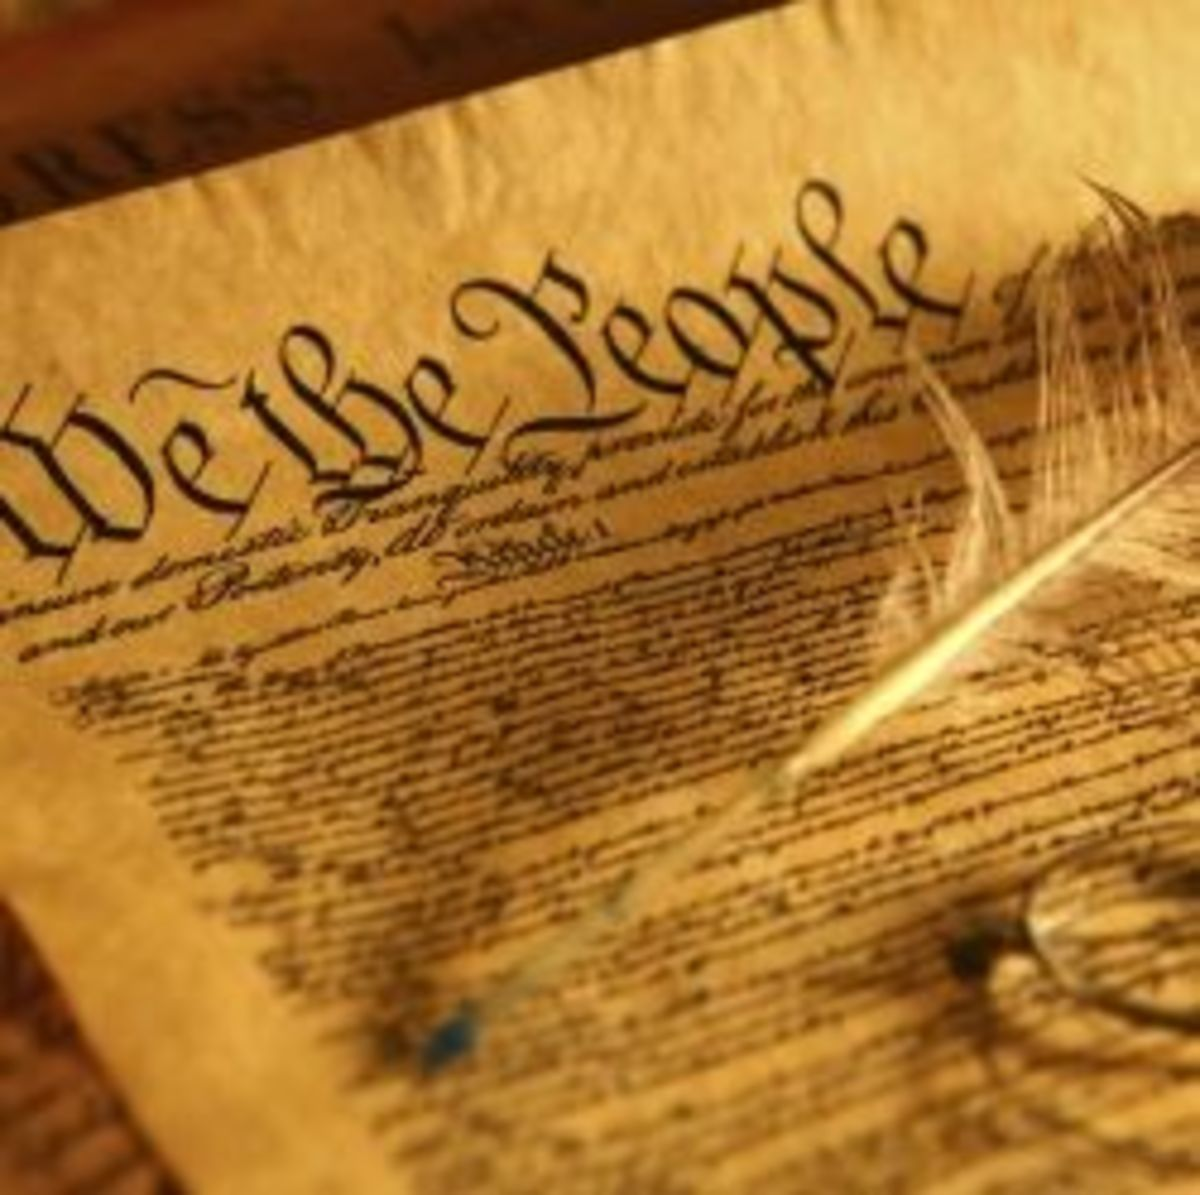 US Constitution image credit: http://billofrightsinstitute.org/blog/2011/09/12/ways-to-celebrate-constitution-day/